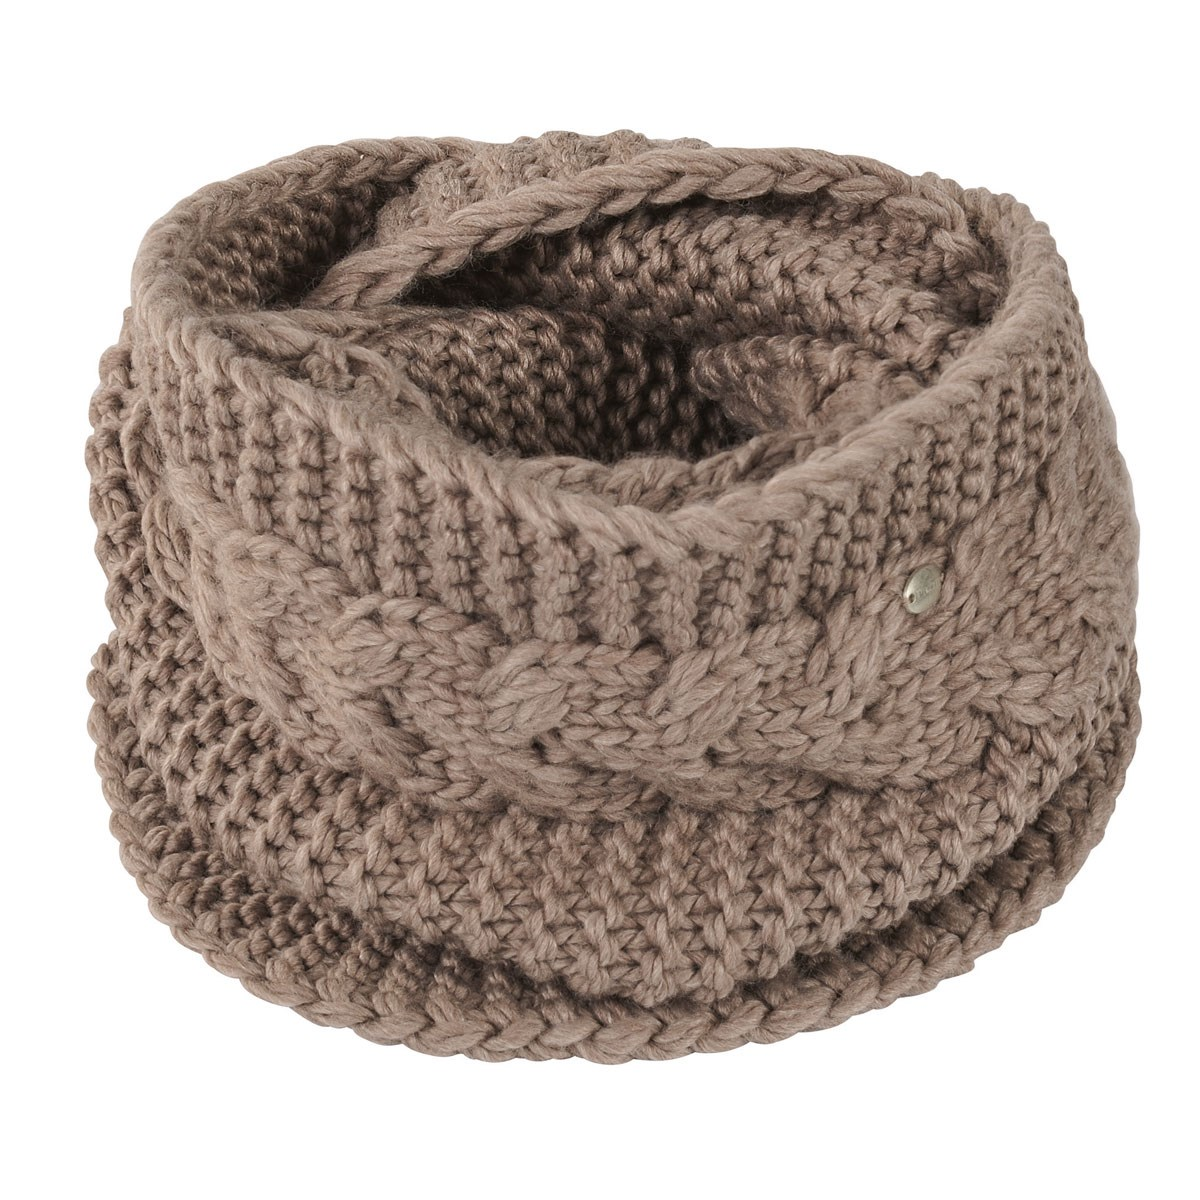 5605bc33f87 Pikeur Cable Knit Loop Neck Warmer - Light Taupe - Redpost Equestrian